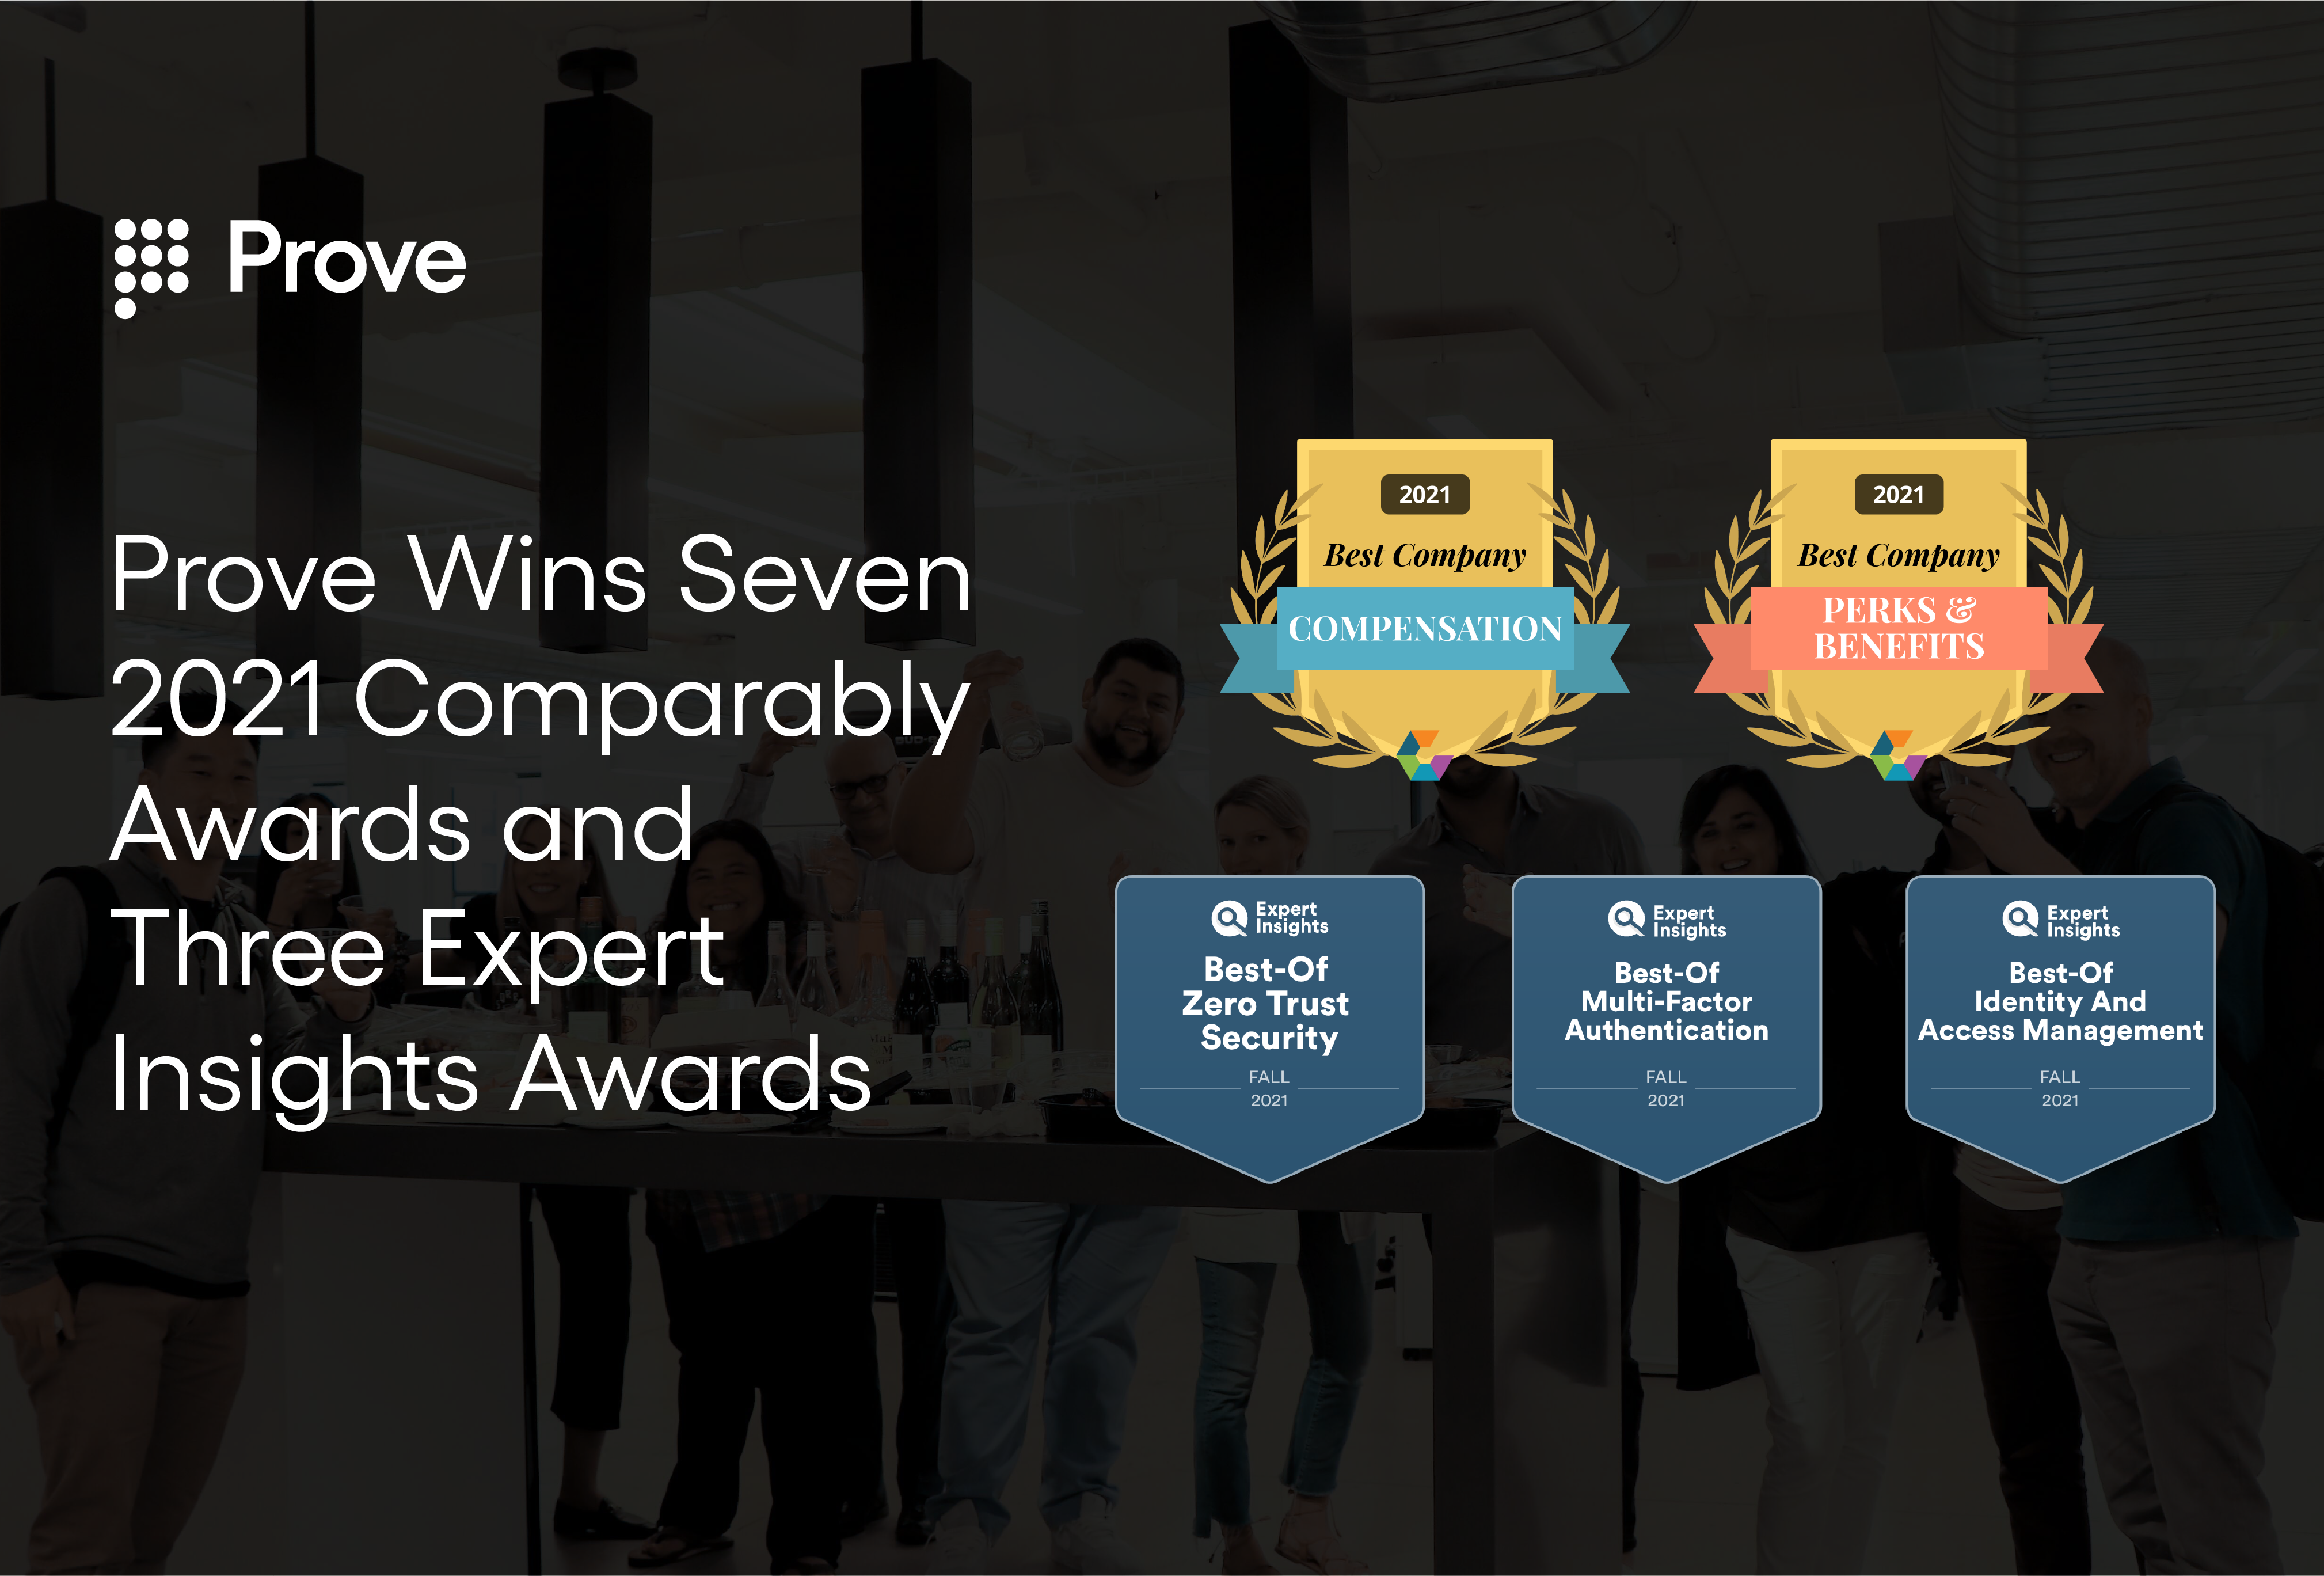 Prove Wins Seven 2021 Comparably Awards and Three Expert Insights Awards